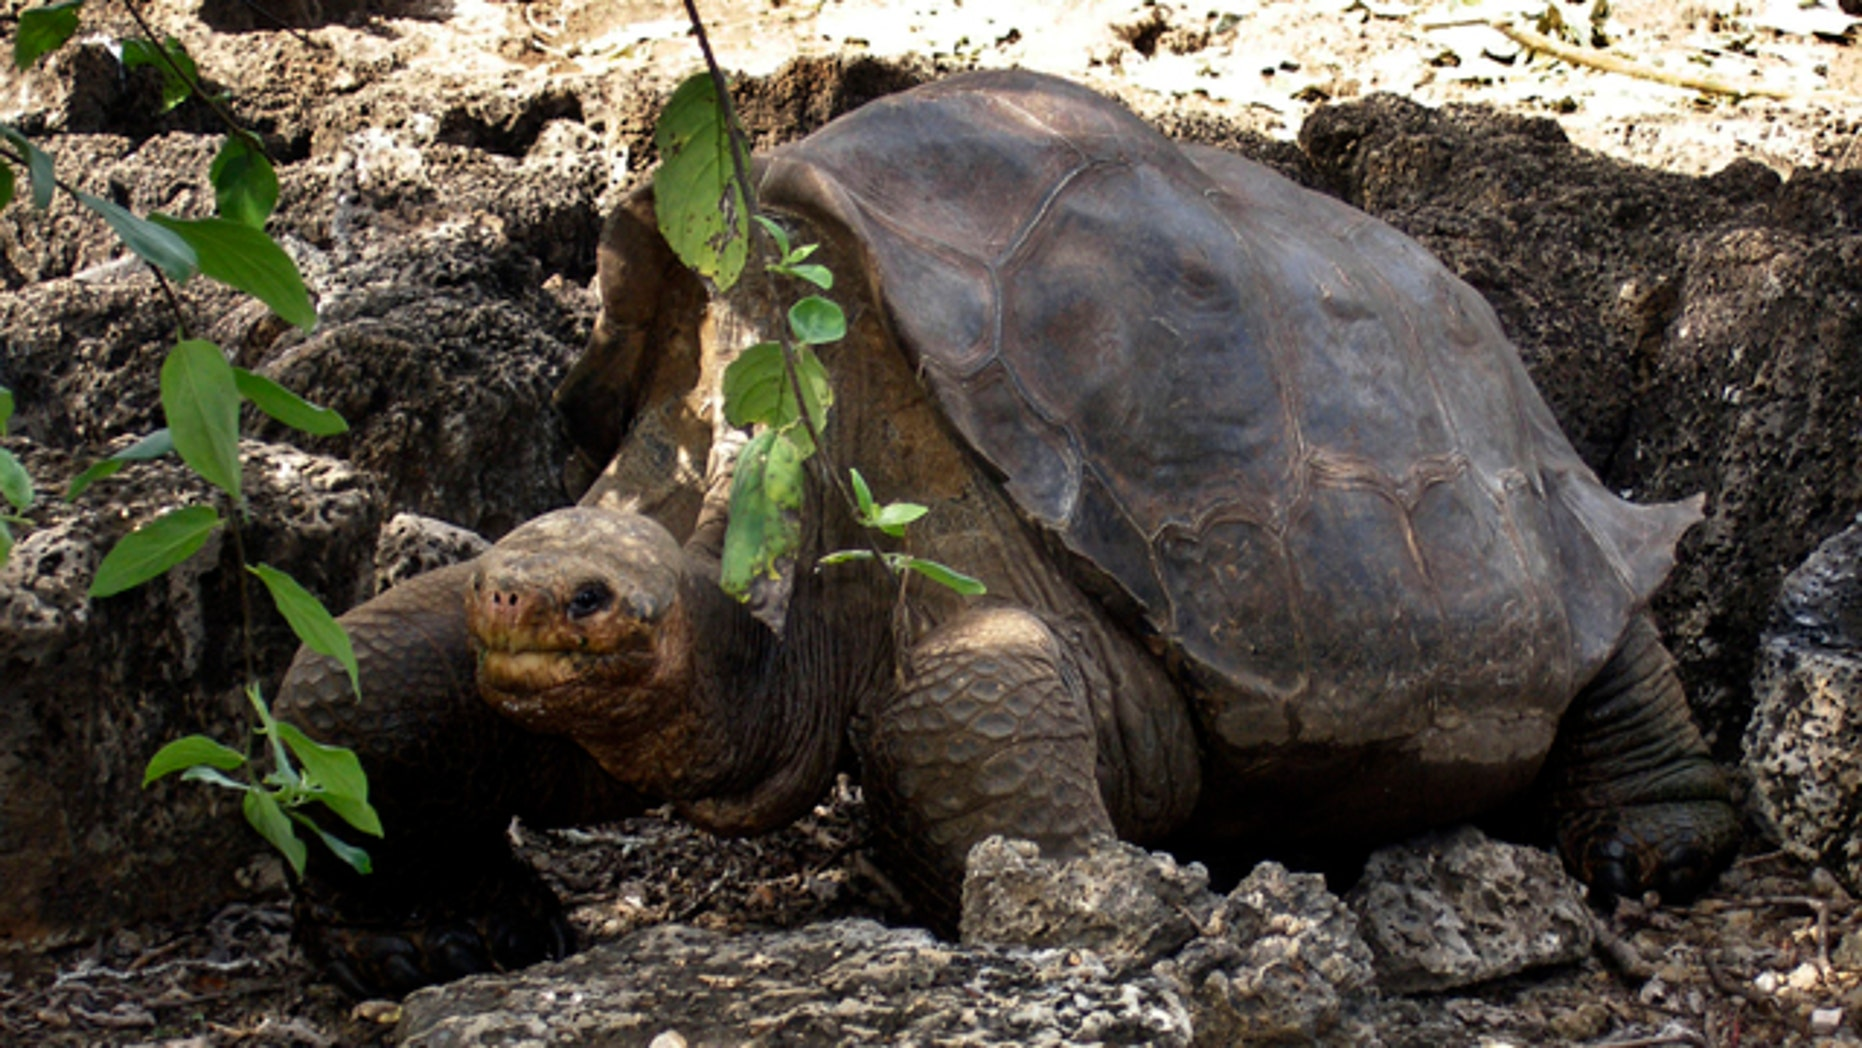 """July 21, 2008: A giant tortoise named """"Lonesome George"""" is seen in the Galapagos islands, an archipelago off Ecuador's Pacific coast."""